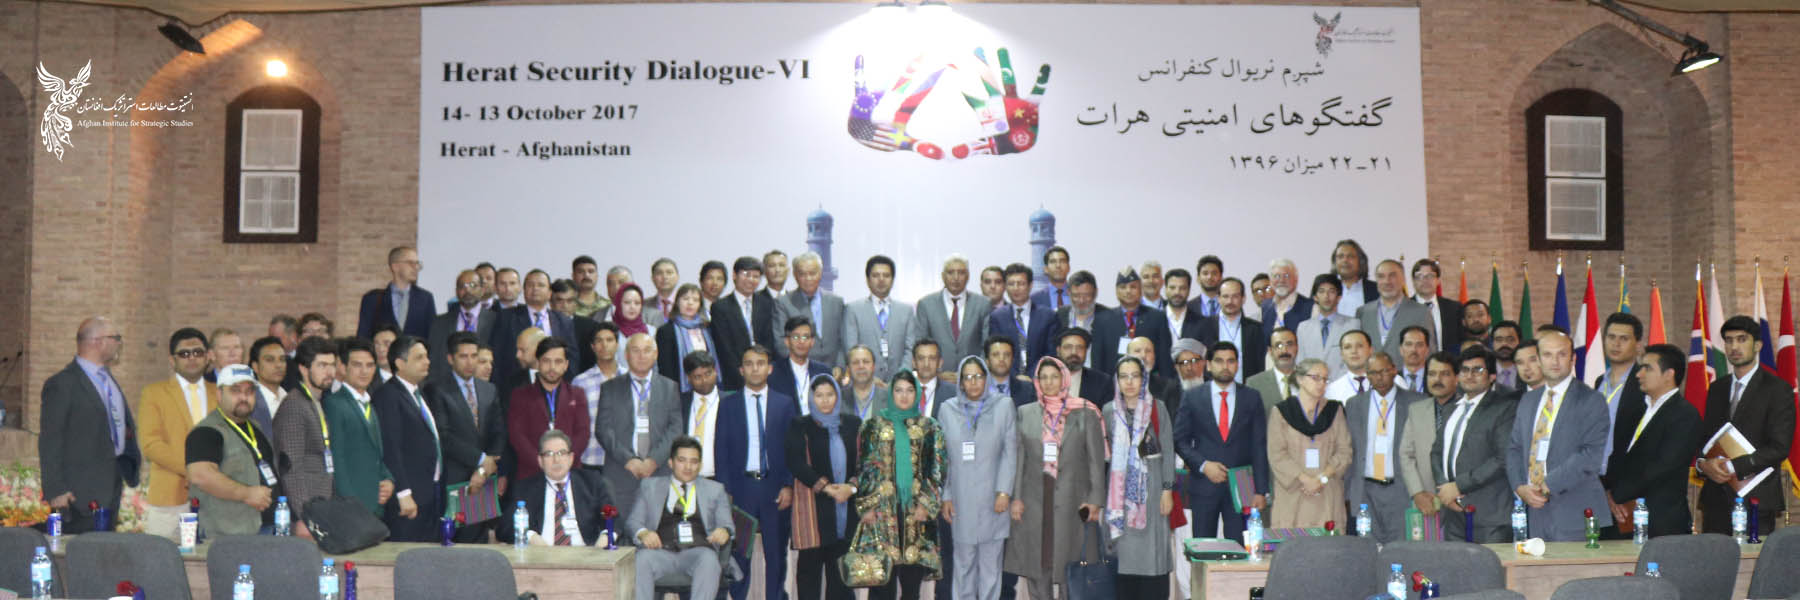 The 6th Herat Security Dialogue (HSD-VI)